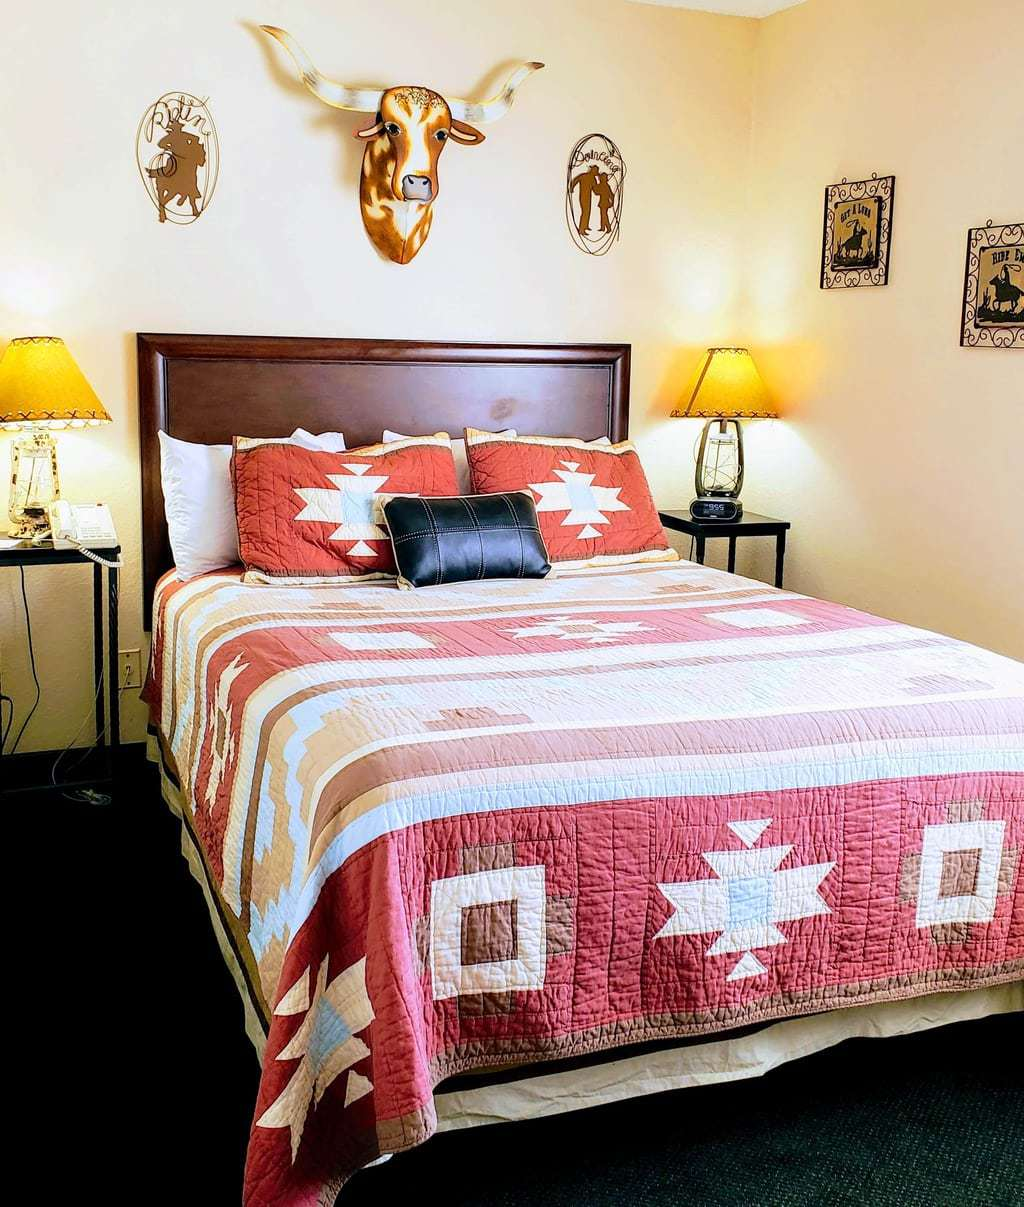 Dolly Parton's Stampede Themed Room at Stone Castle Hotel